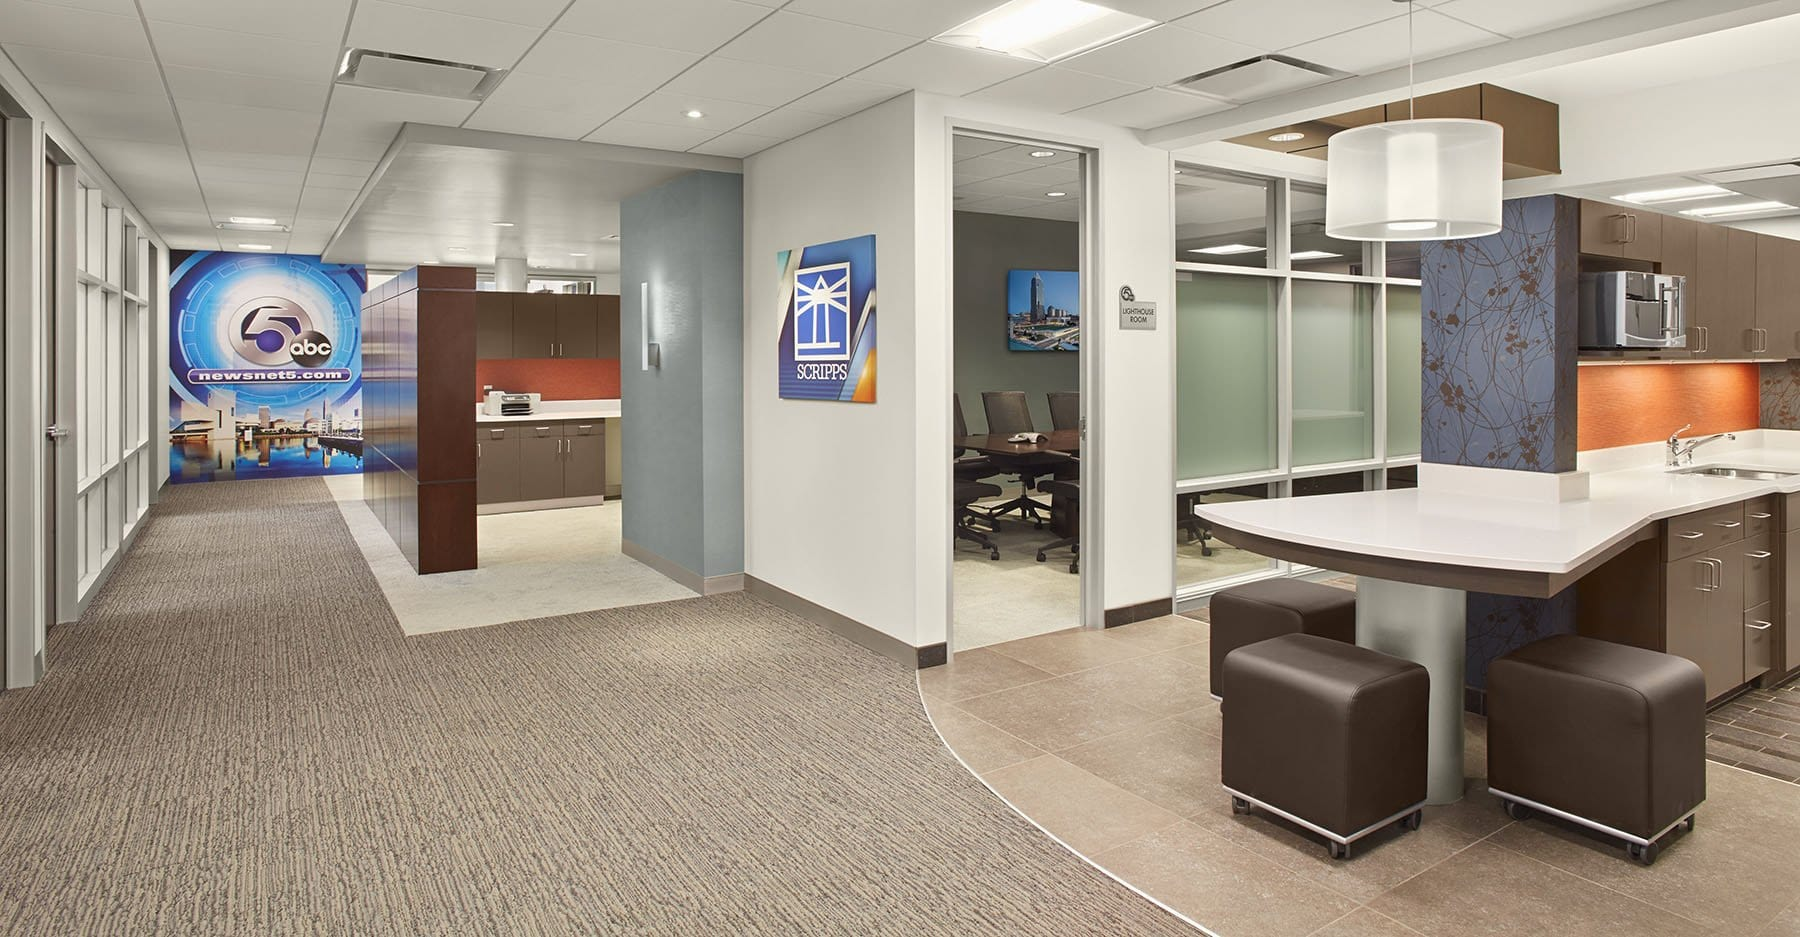 News channel 5 office renovation arkinetics for Newspaper articles on interior design